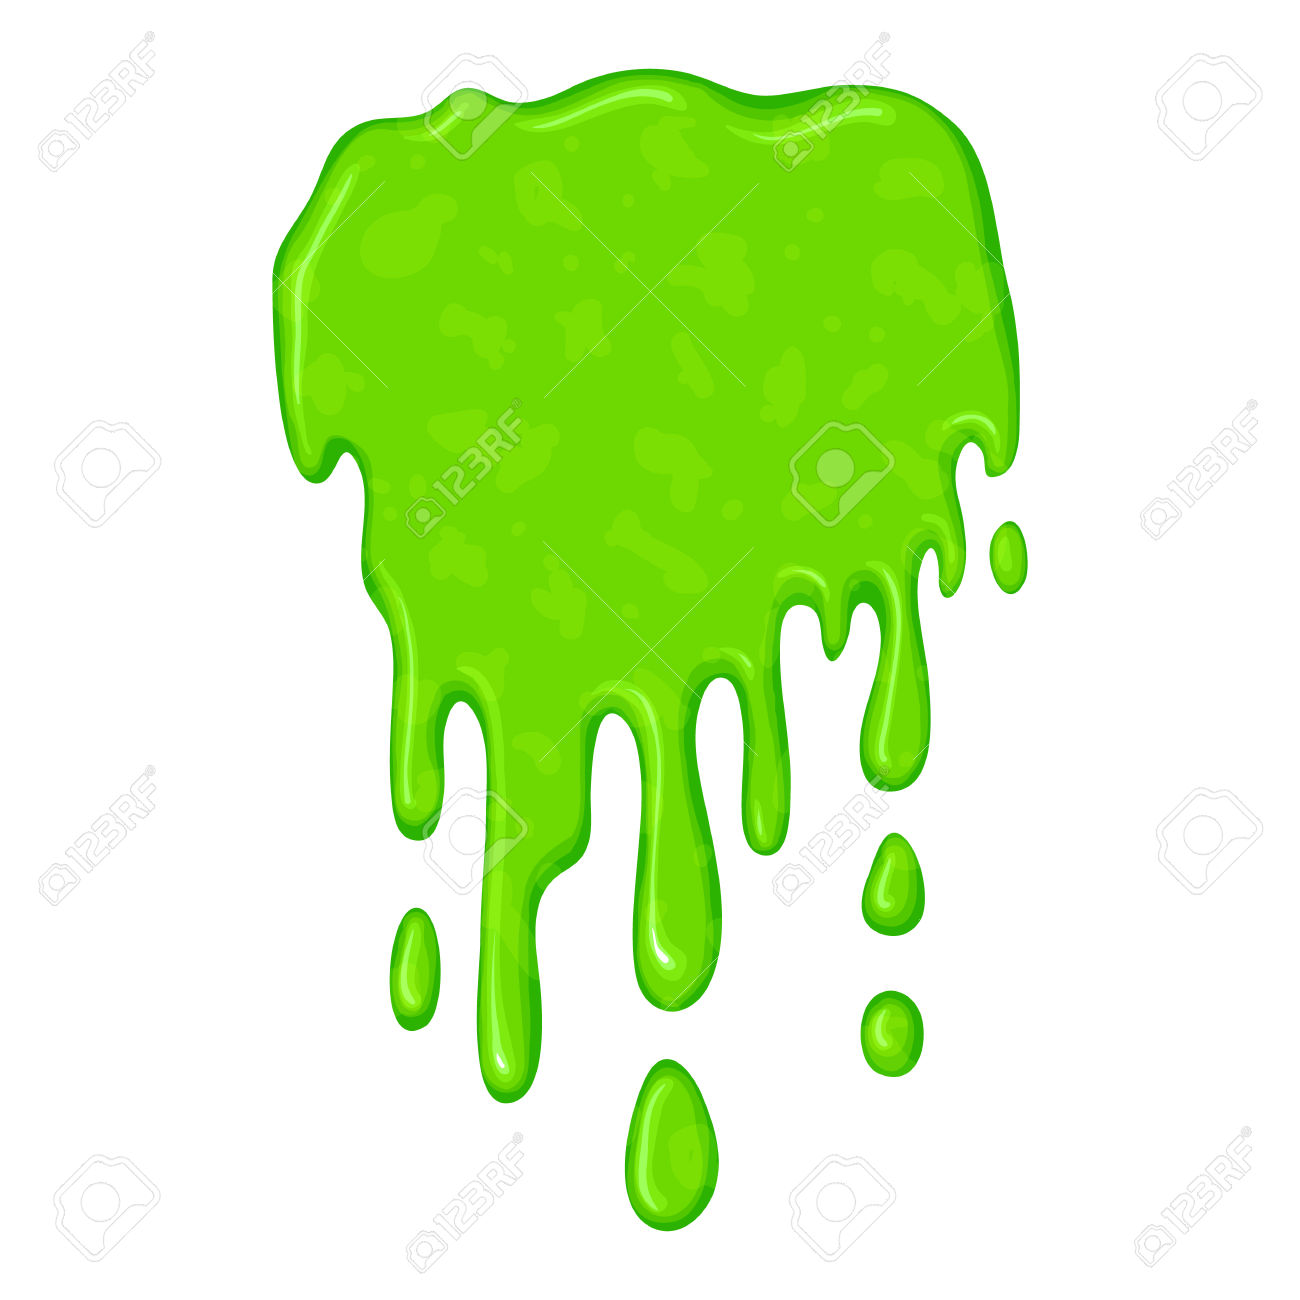 18,614 Slime Stock Illustrations, Cliparts And Royalty Free Slime.